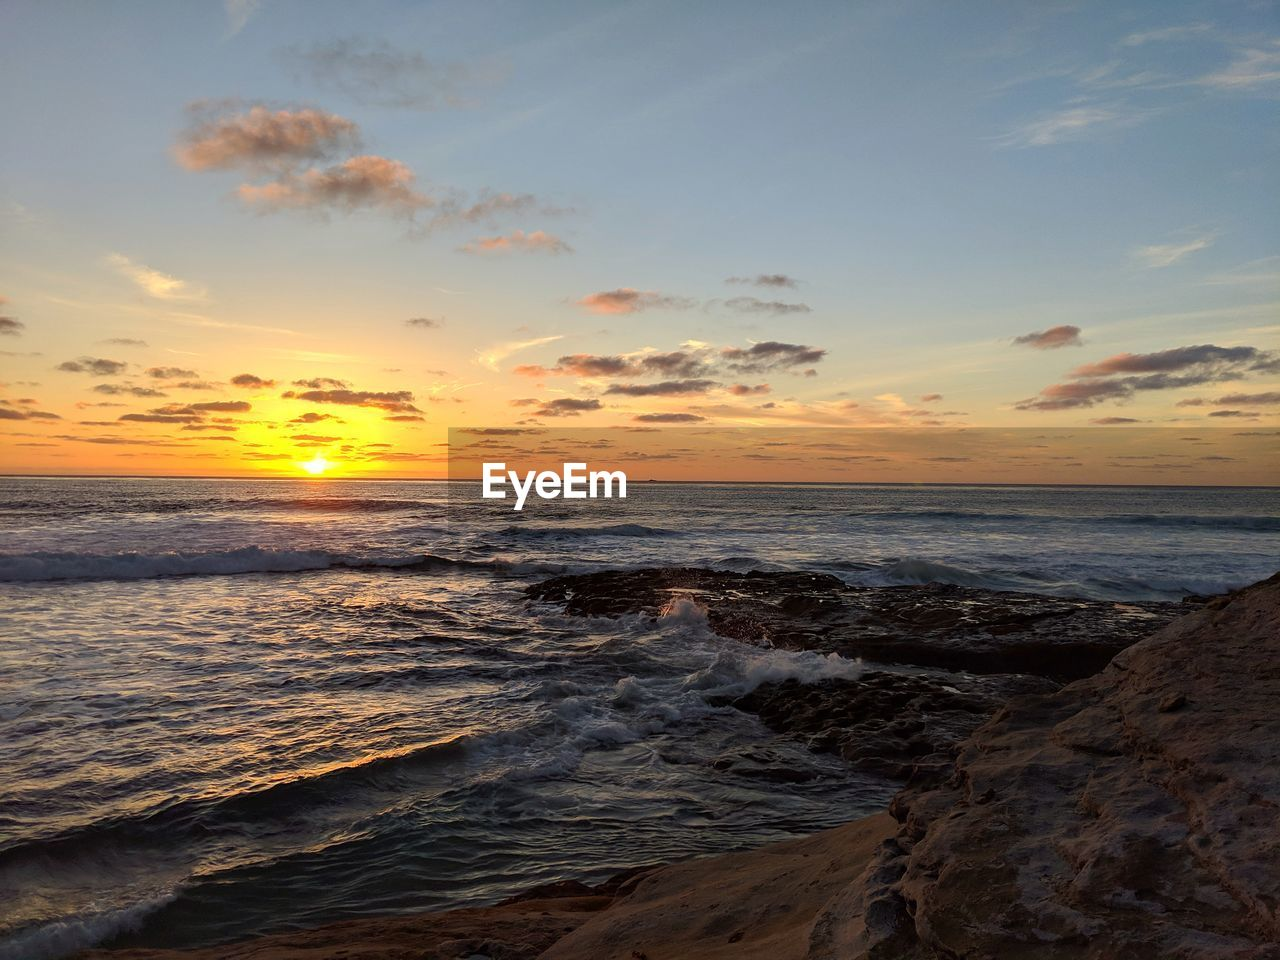 sunset, sky, sea, water, scenics - nature, beach, beauty in nature, horizon over water, land, horizon, cloud - sky, tranquility, wave, motion, orange color, tranquil scene, idyllic, no people, nature, outdoors